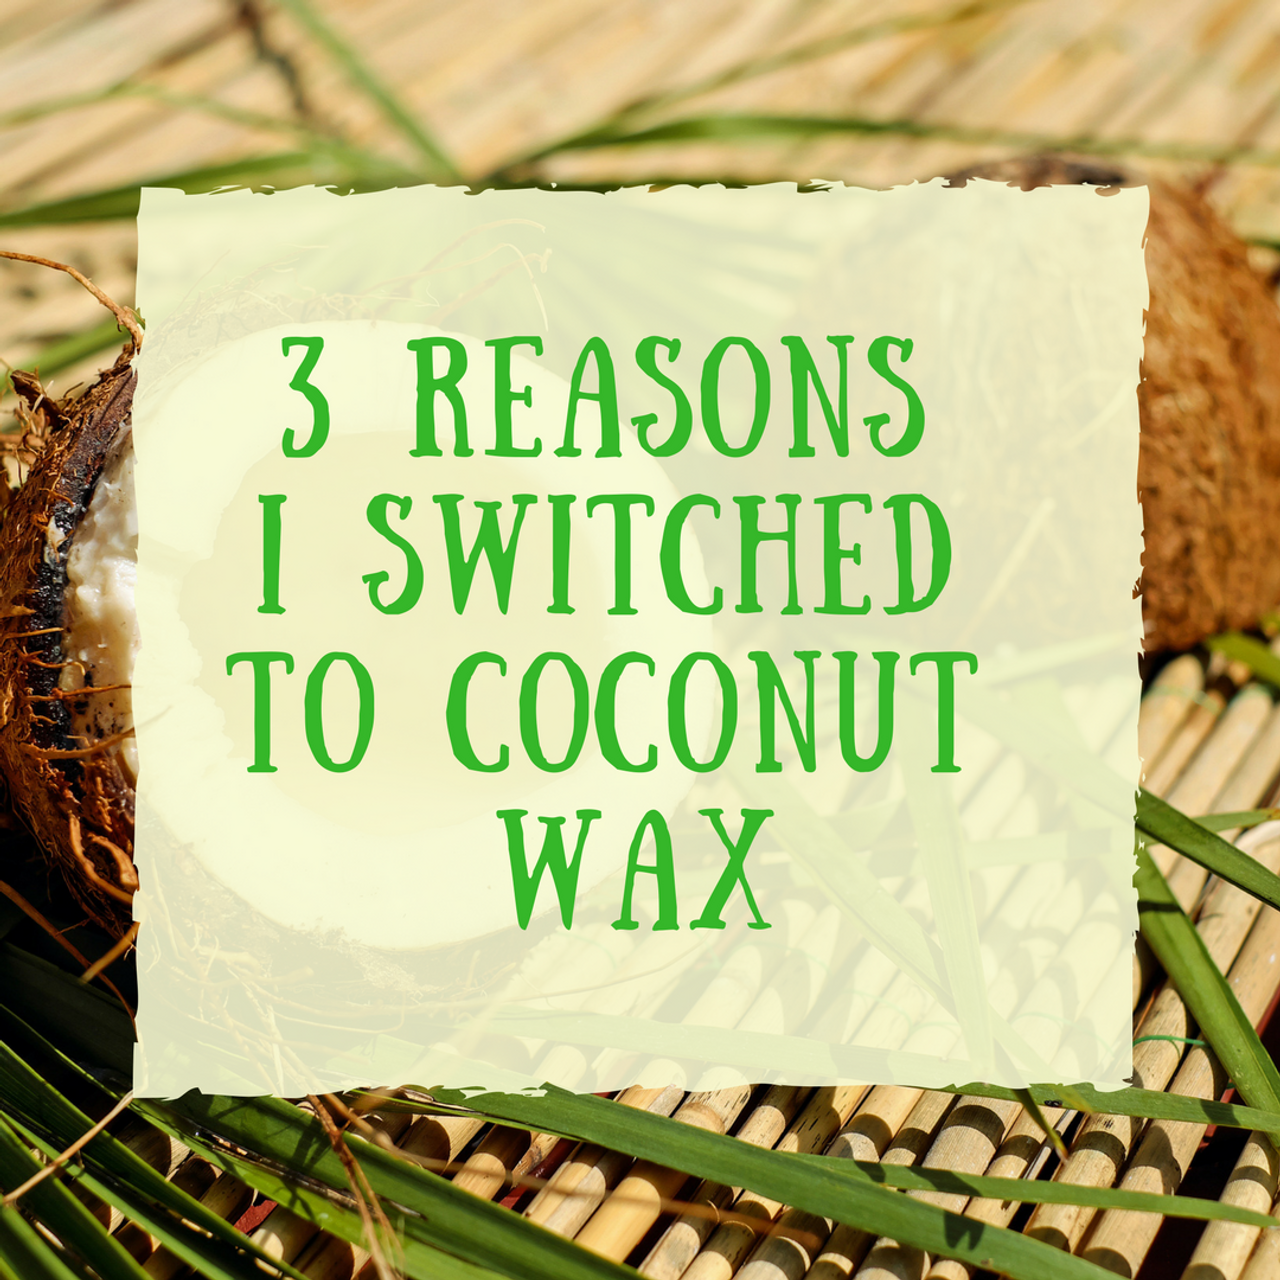 Why Book Scents switched to Coconut Wax